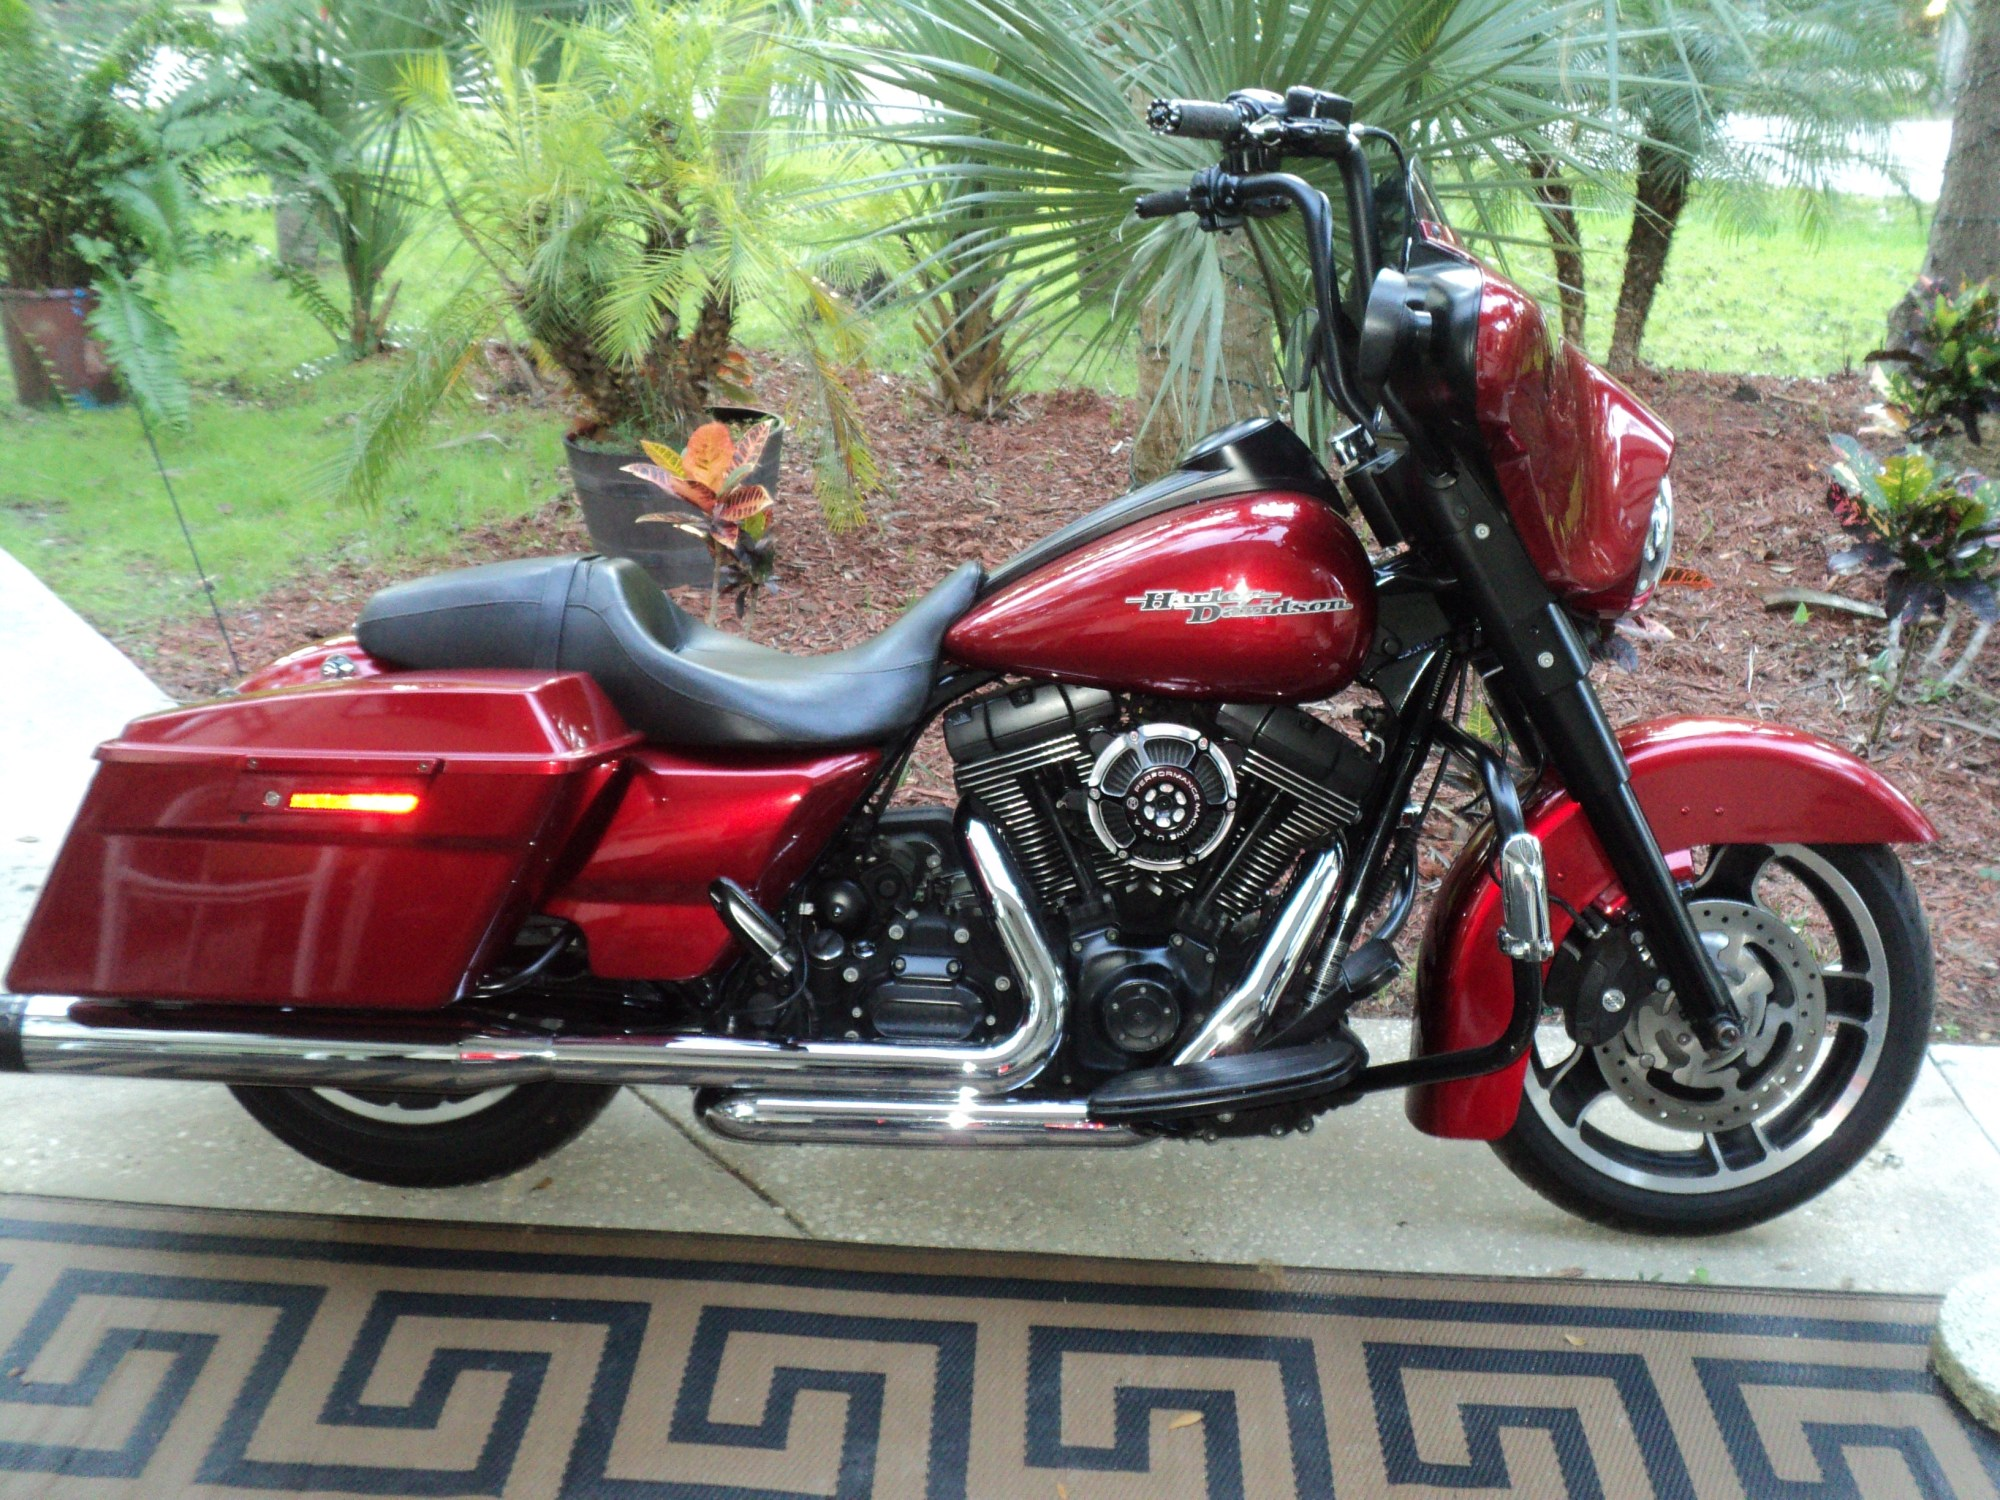 hight resolution of super cool street glide black aps with interal wires custom black grips nice deep red paint reinhart pipes cool breather kit fuel down load blacked out